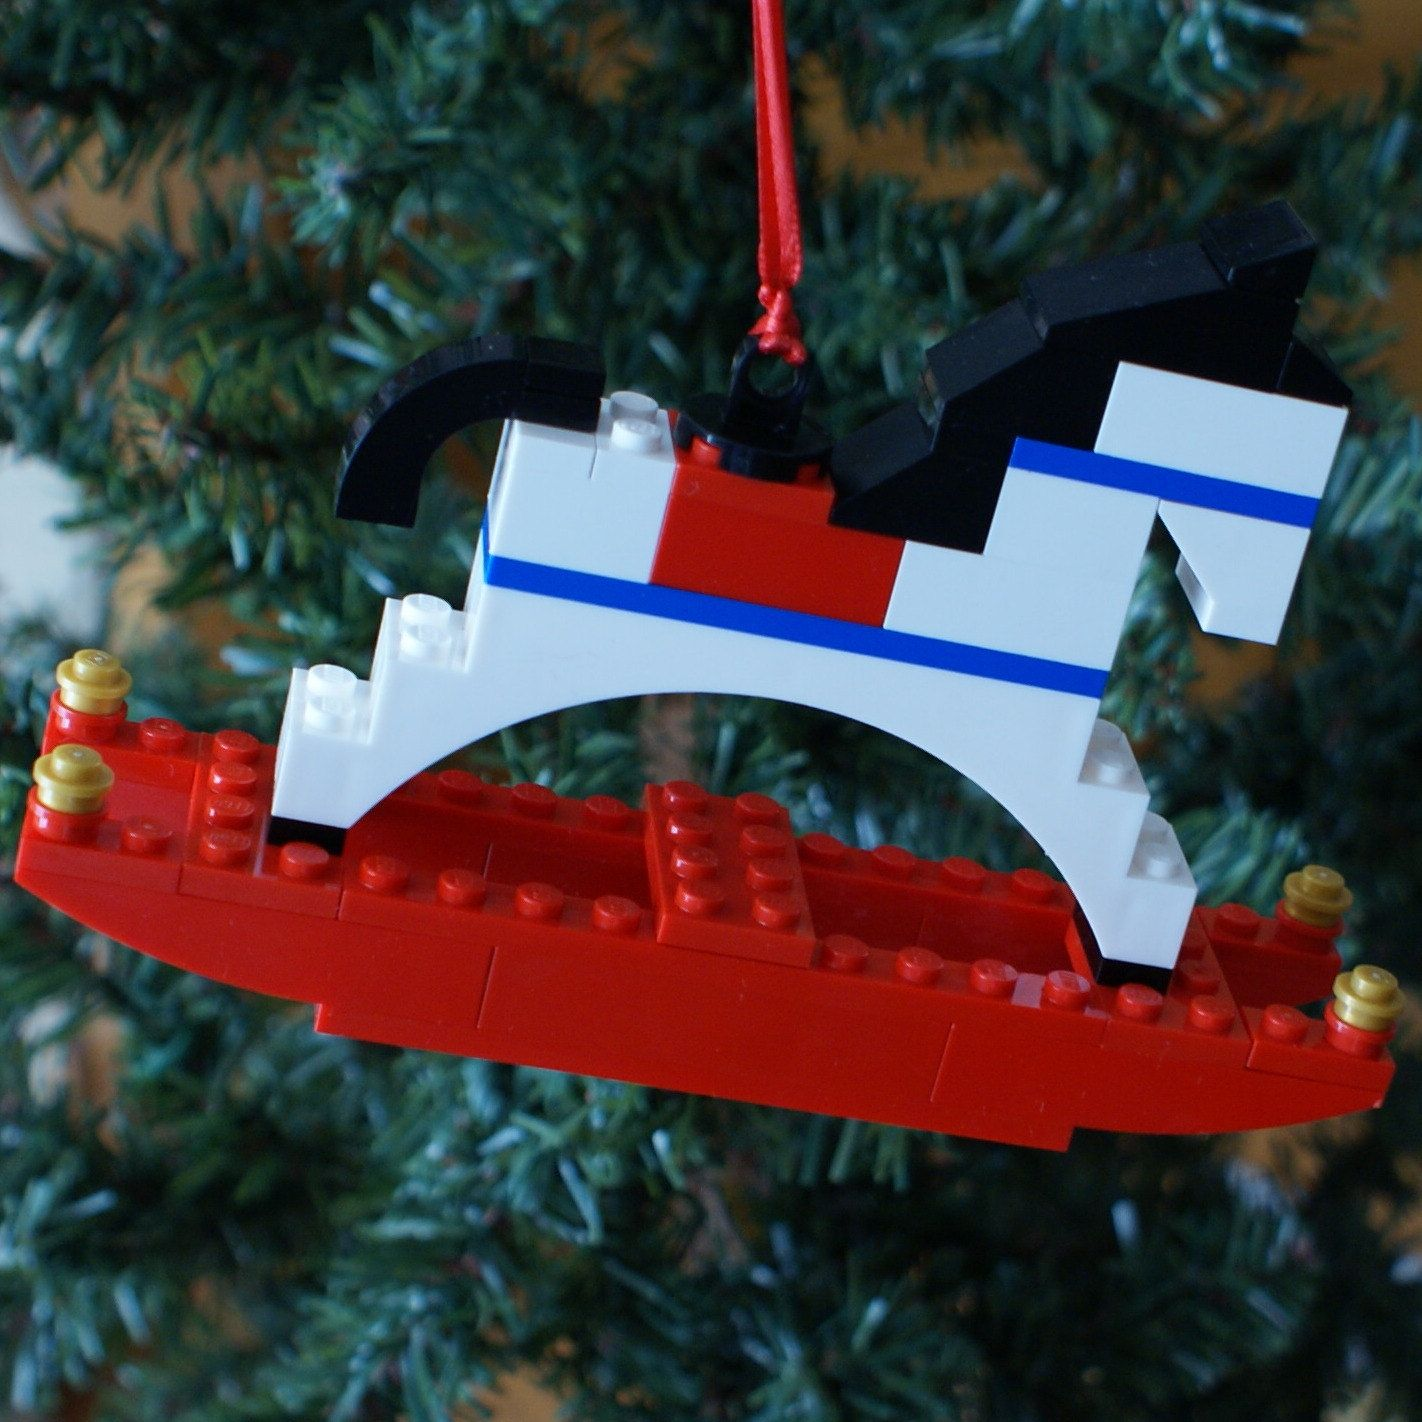 Lego Rocking Horse Christmas Ornament By Ornaments4charity On Etsy, $1500